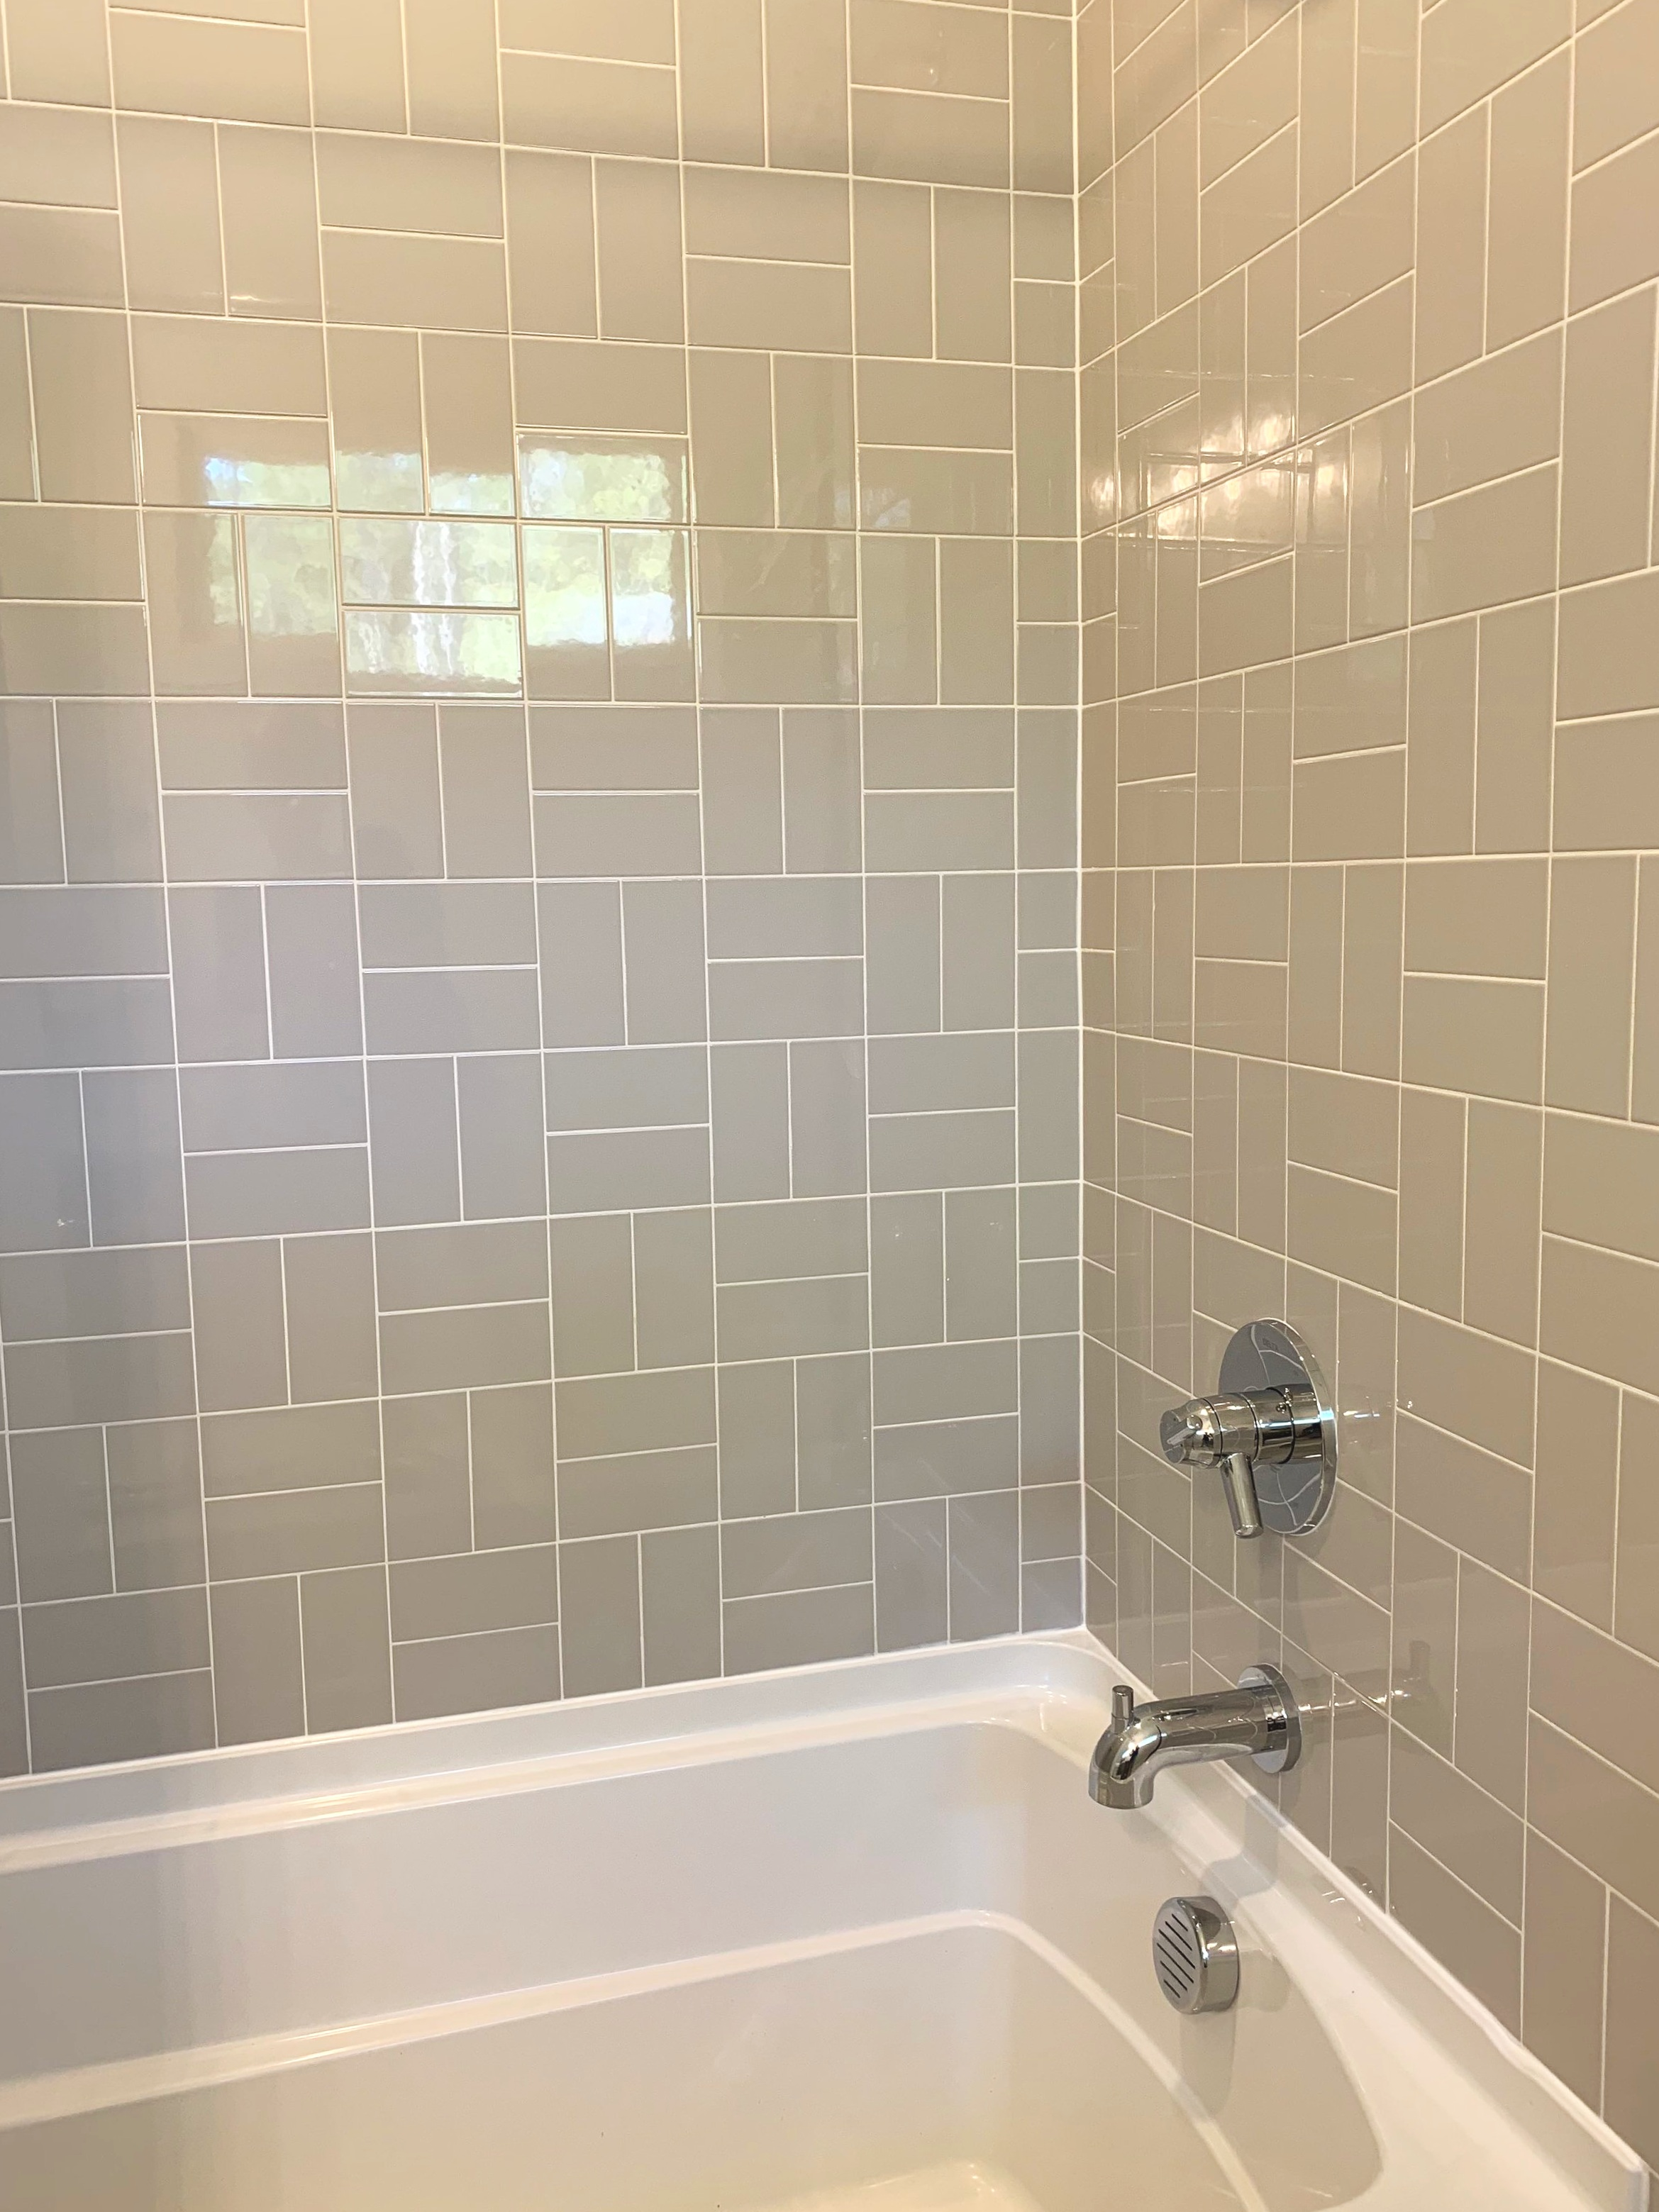 A weave tile pattern with white grout is a great design tip that I would share in a 2 hour design consultation in Raleigh.